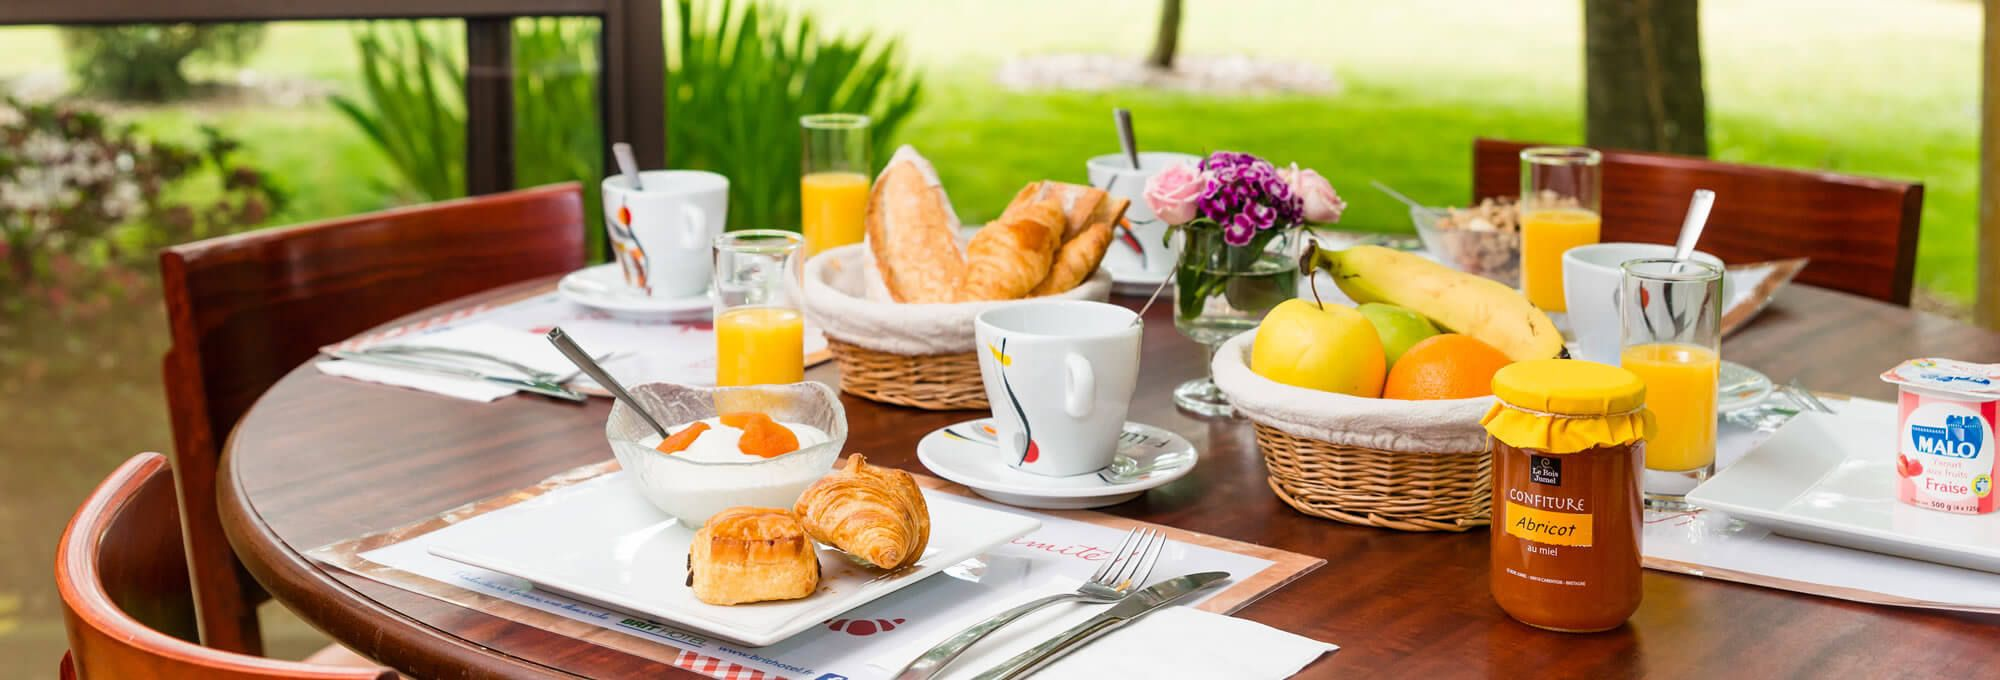 Breakfast at the Brit Hotel Rennes Cesson - Le floreal